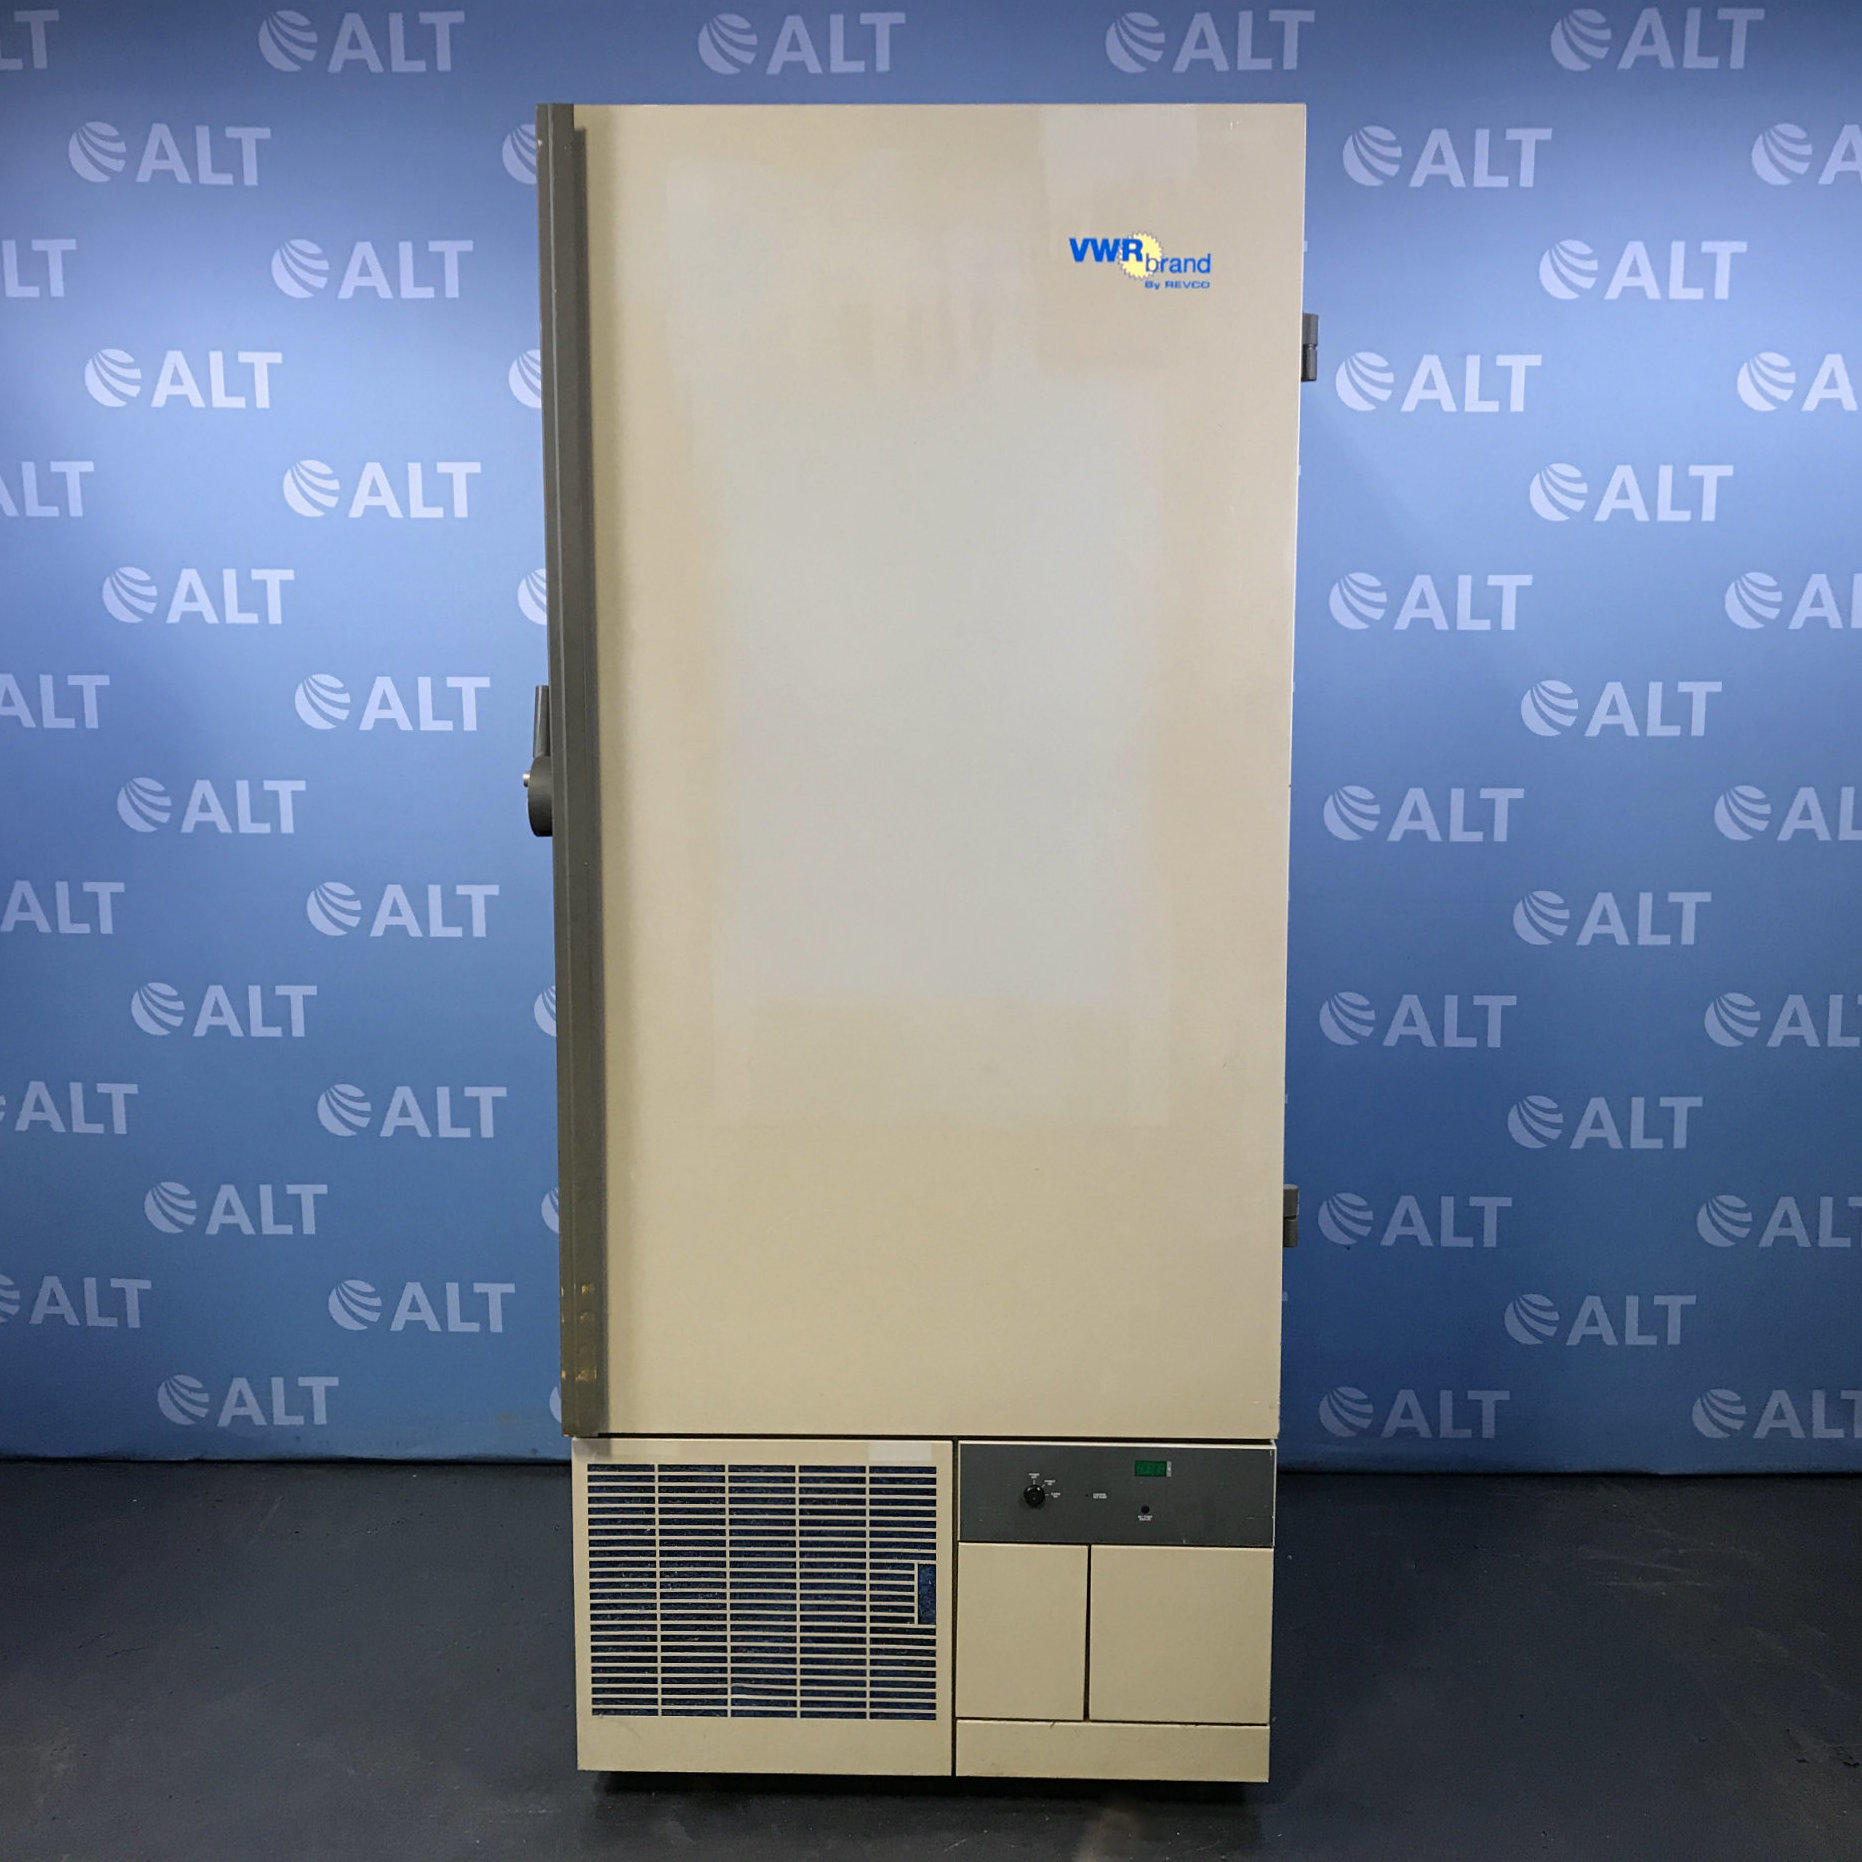 VWRbrand -40 Upright Freezer Model A4017U14 Image